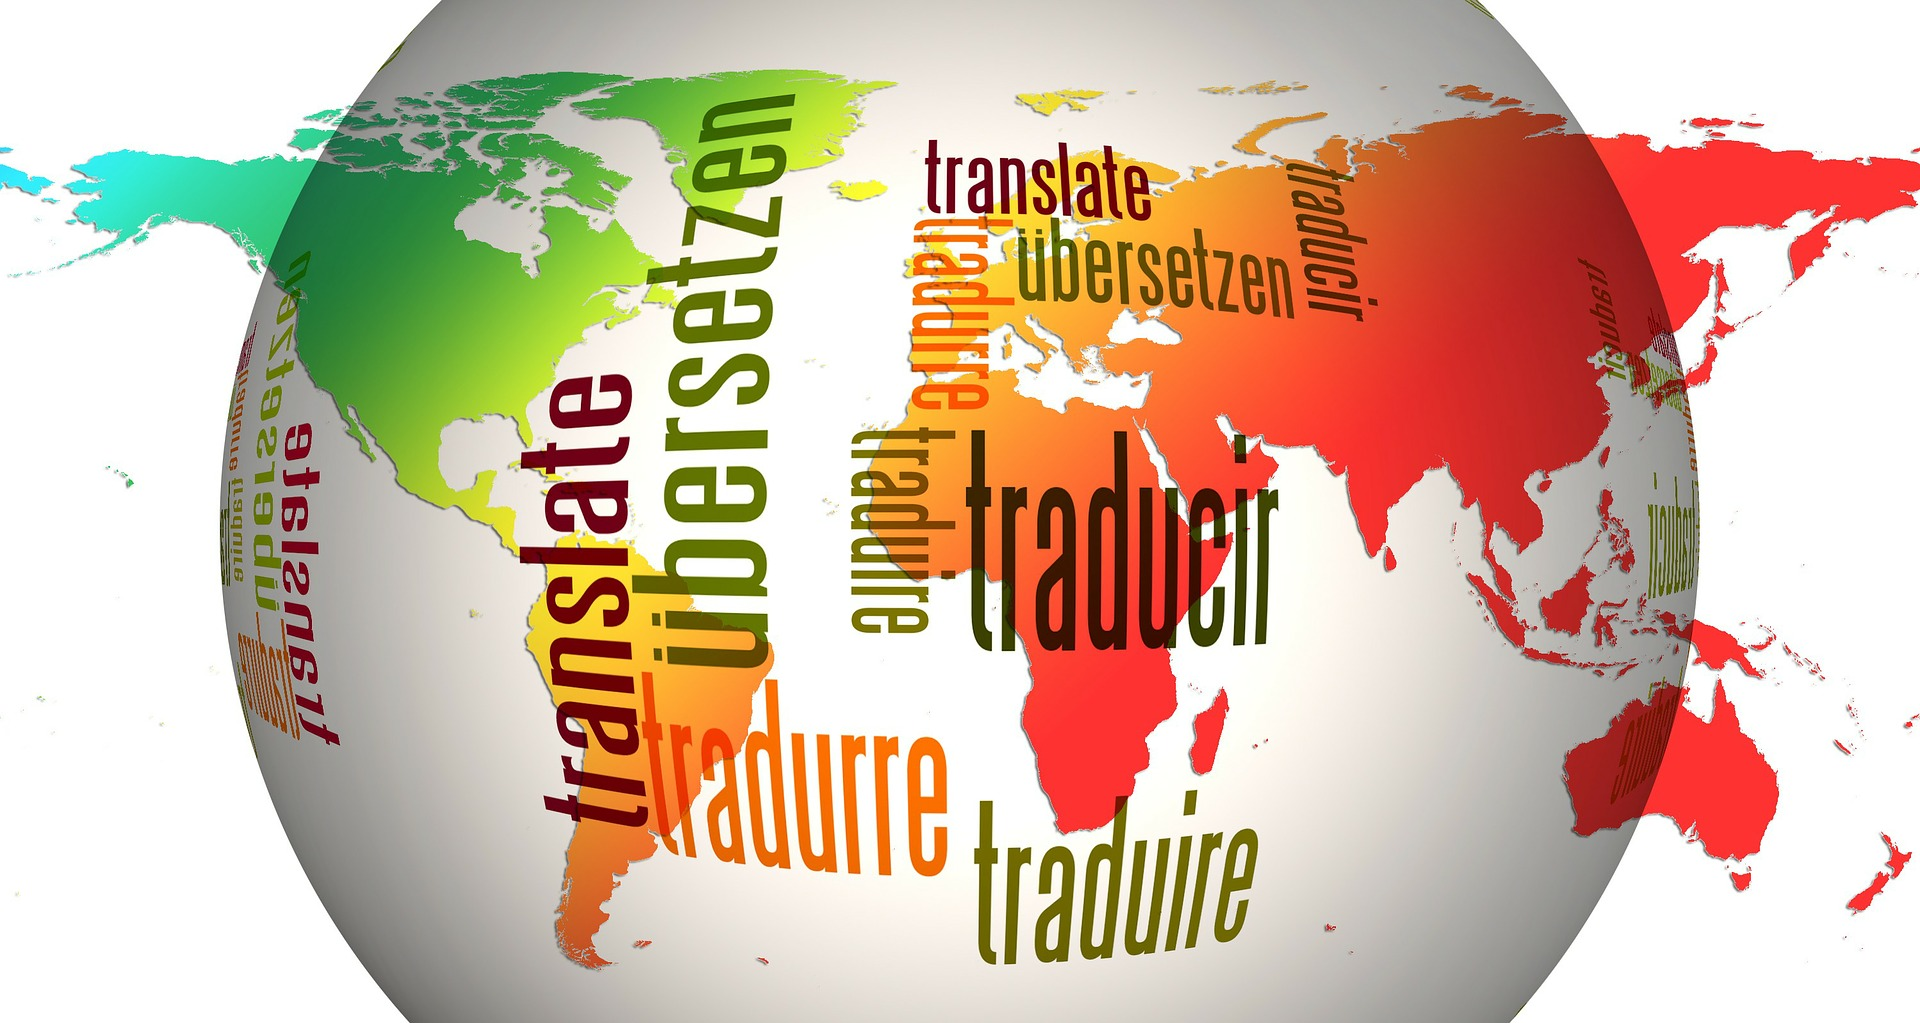 the word translation in multiple langages